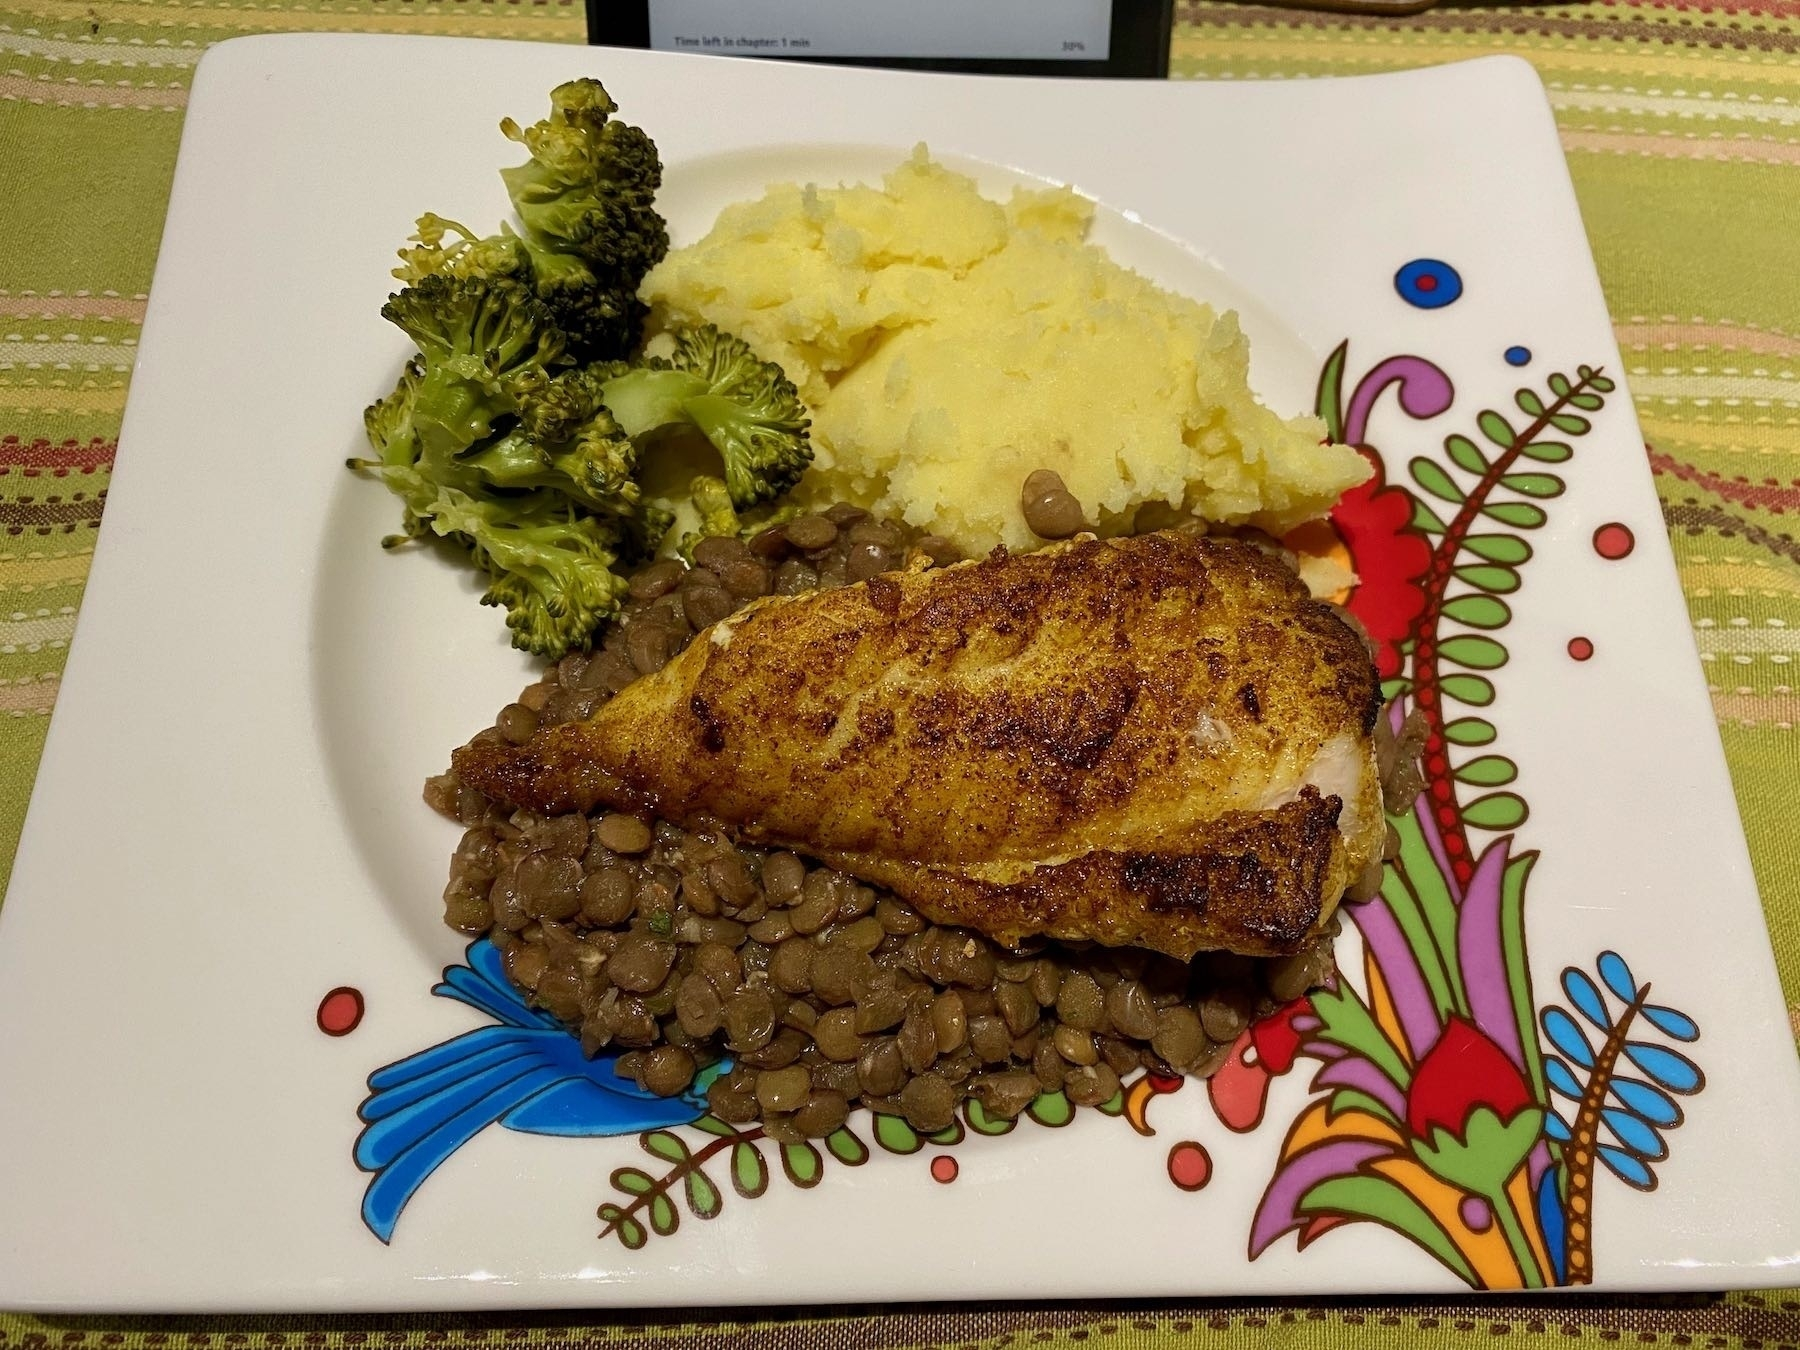 Plate with broccoli, mashed potato, lentils and fish.